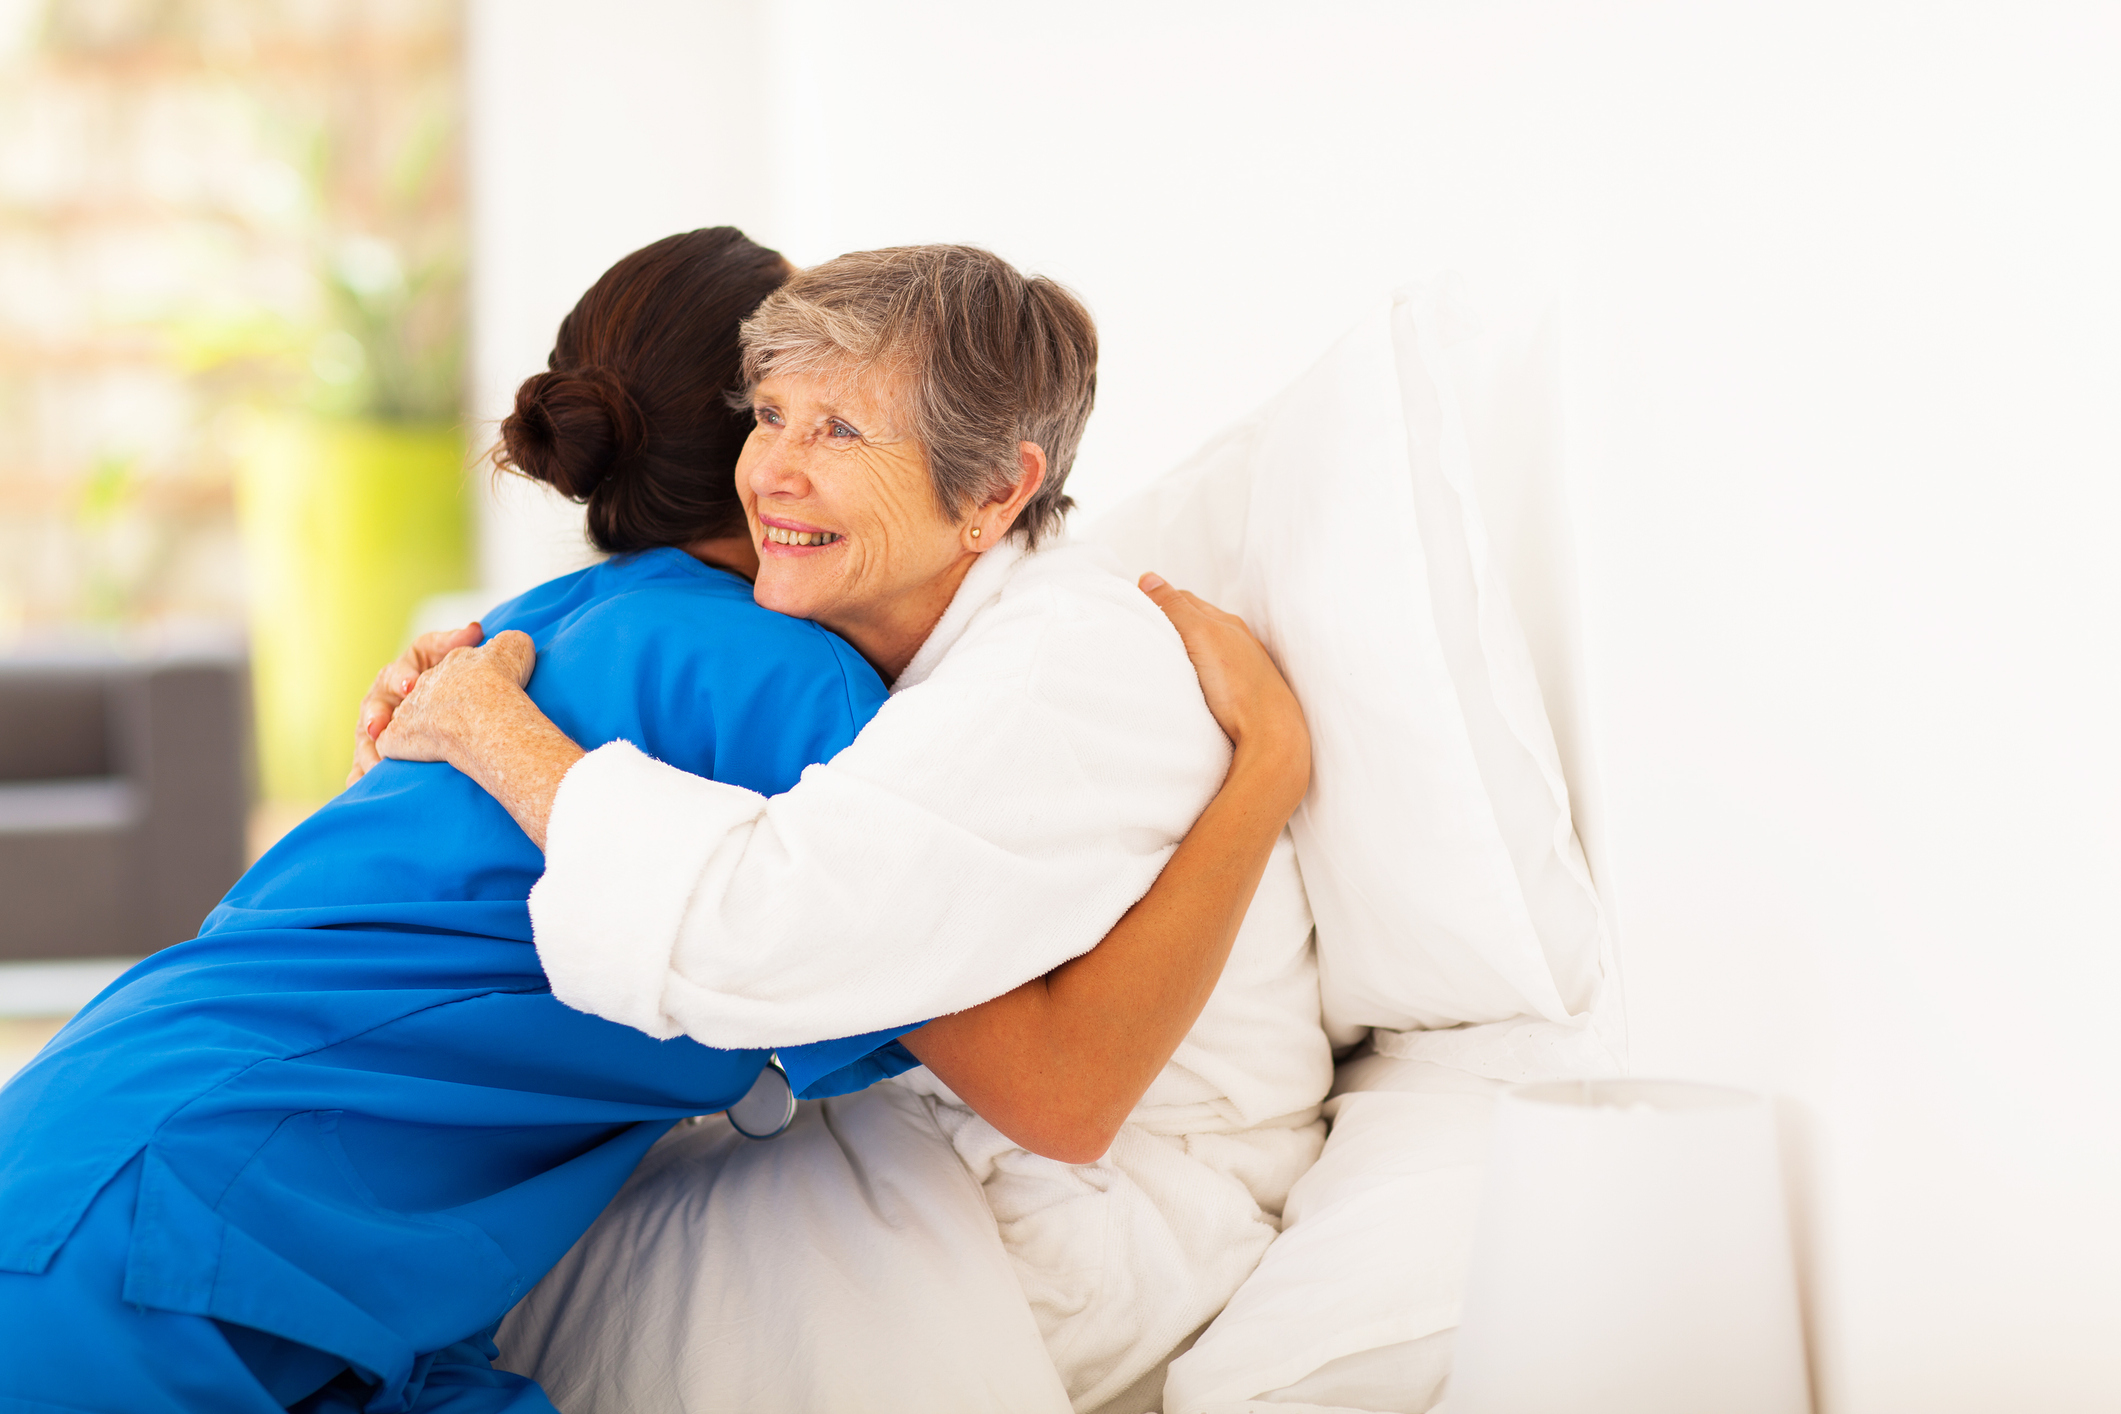 HOMEMAKERS AND COMPANIONS - Our homemakers and companions provide assistance with personal care and activities of daily living, including: housekeeping, laundry, grocery shopping & meal preparation, companionship, reading, medication reminders, walking escort, escort to doctor appointments and recreation. We provide our caregivers with transportation to assist you with these daily needs.